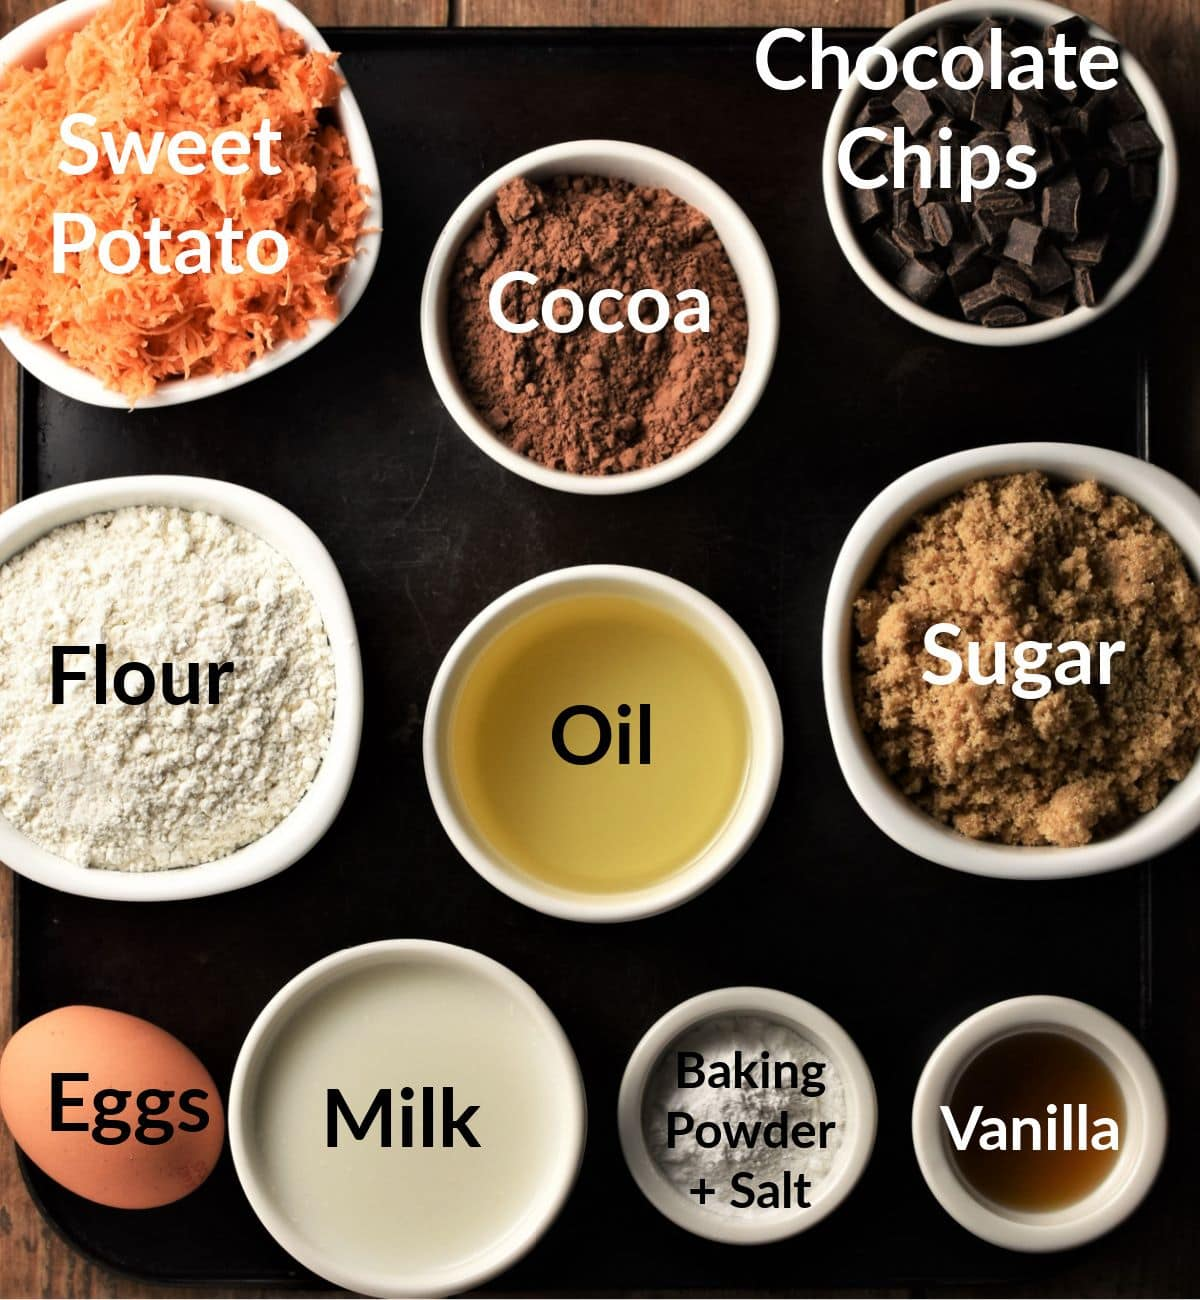 Sweet potato chocolate muffins ingredients in individual dishes.